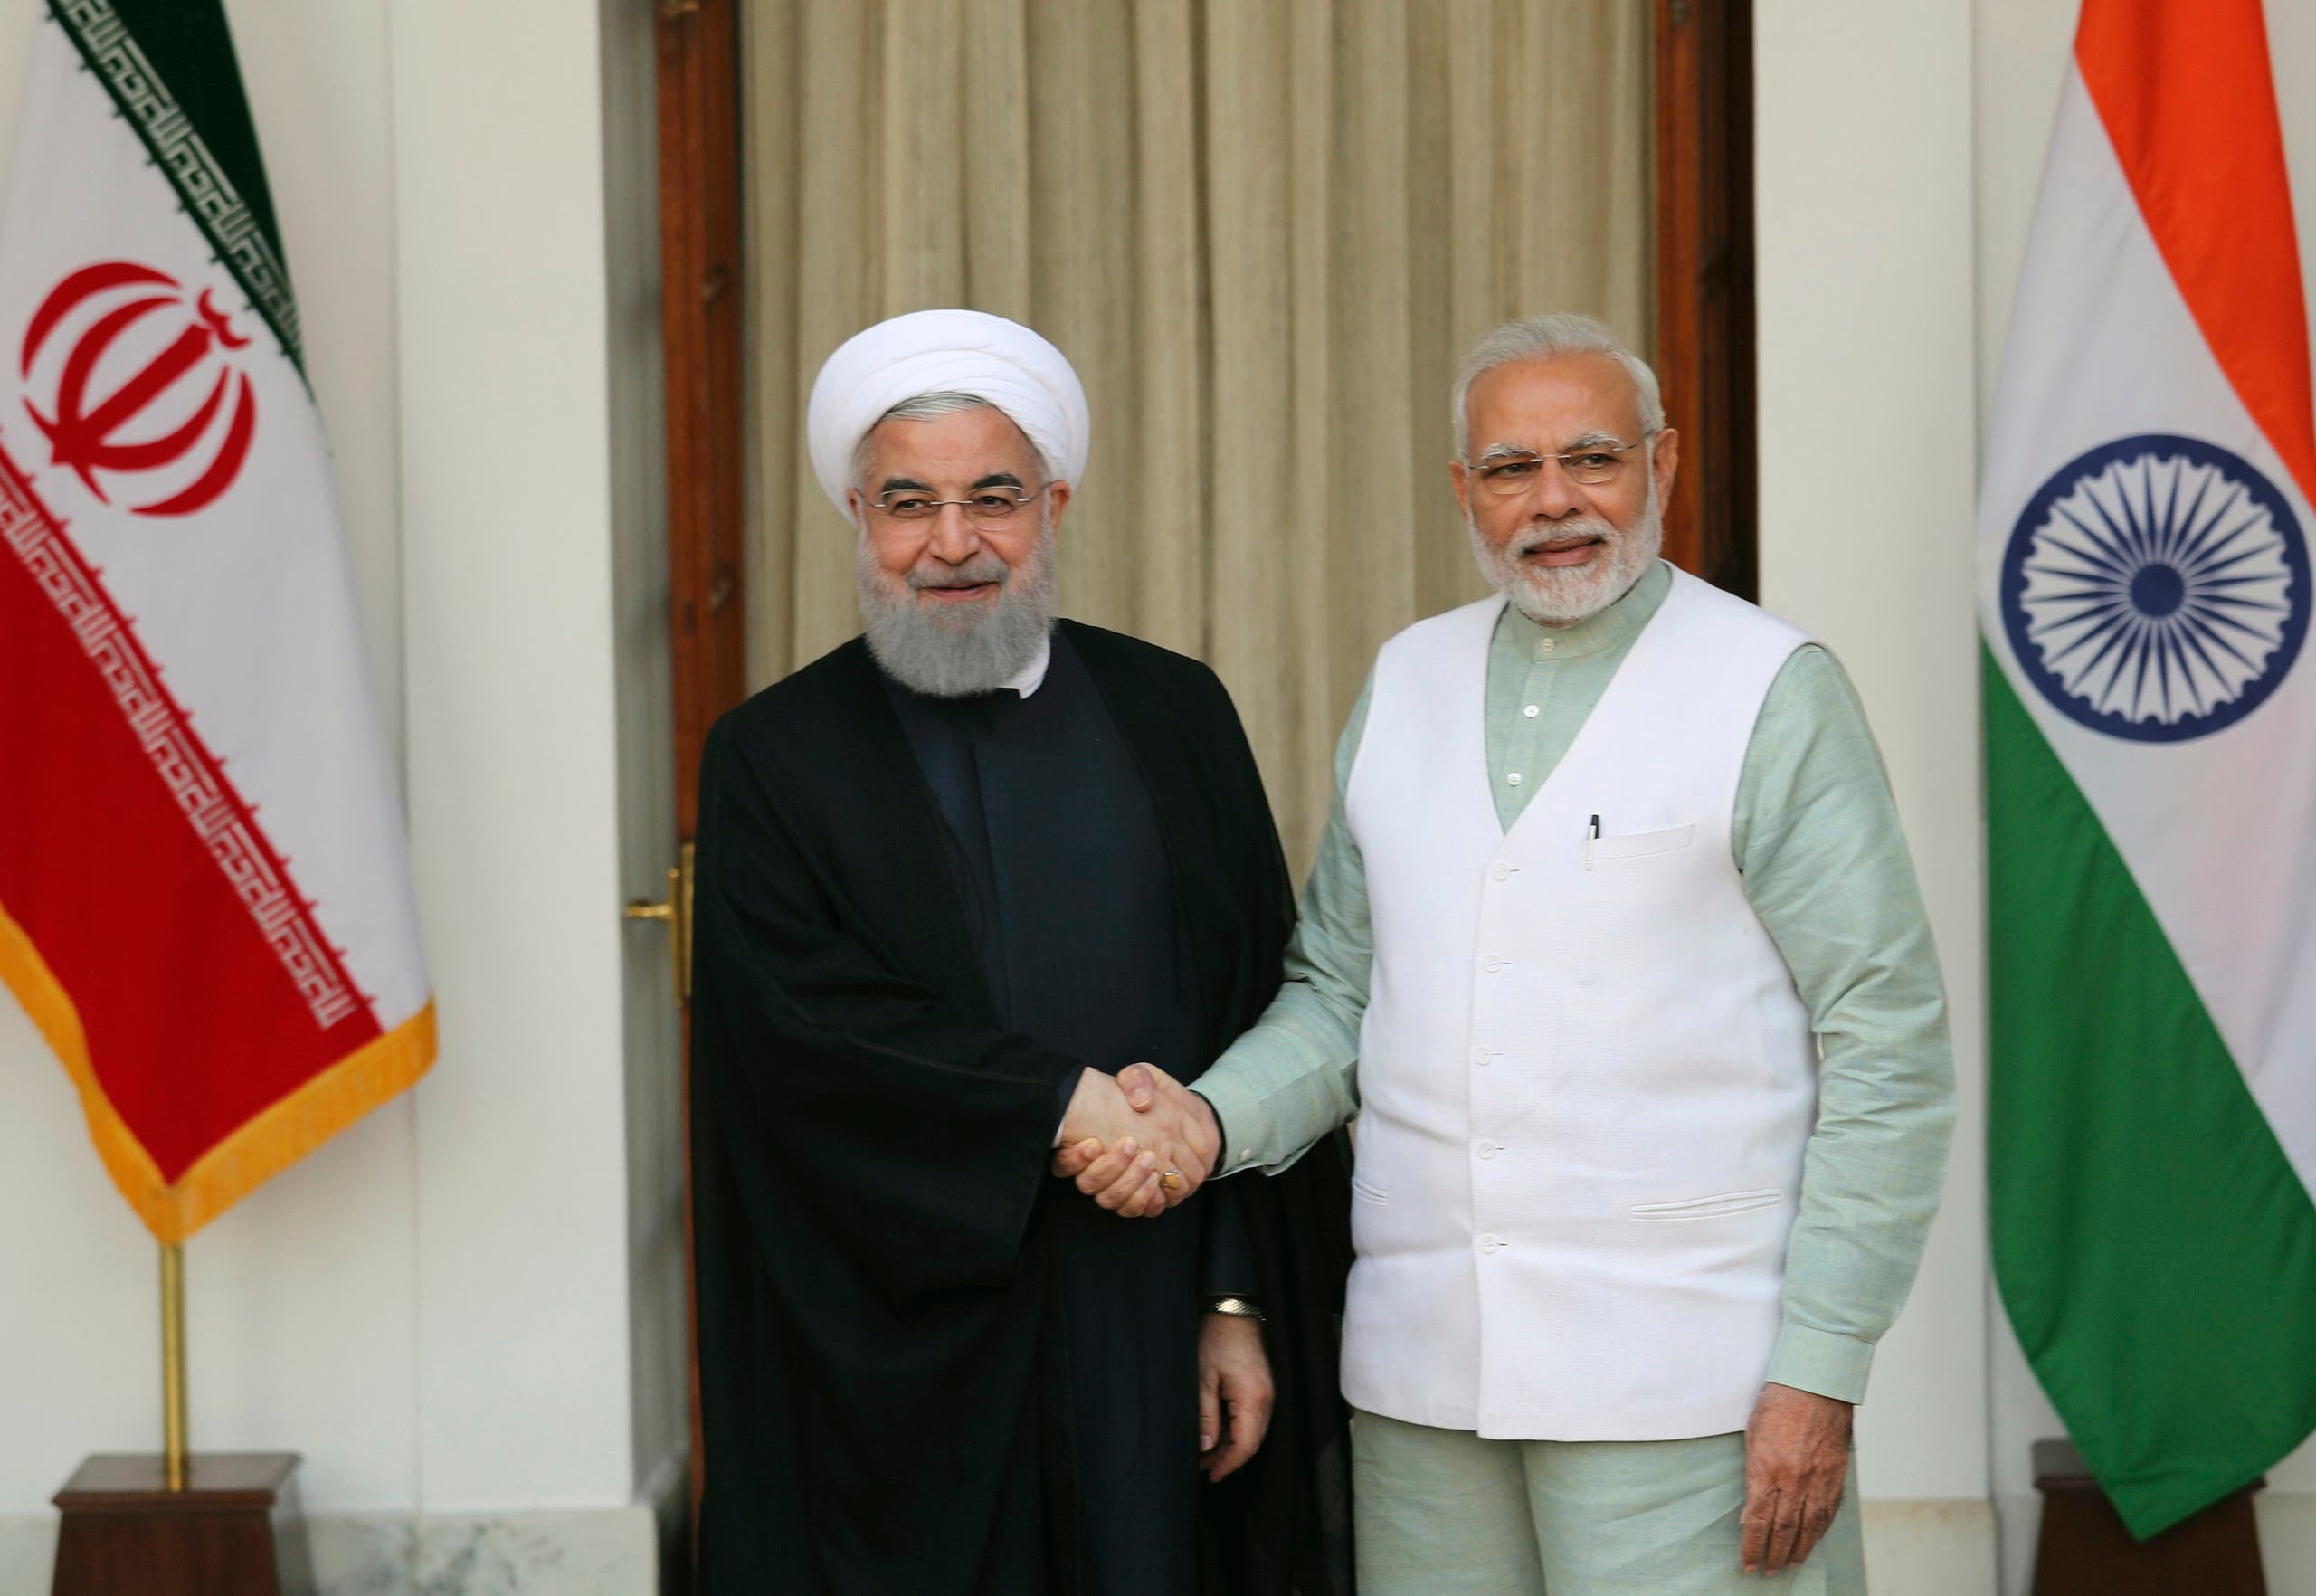 On Feb. 17, 2018 India and Iran said they will make efforts to improve energy security and regional connectivity to reach landlocked Afghanistan and Central Asia through developing Iran's Chabahar Port and road and rail routes. (AP)